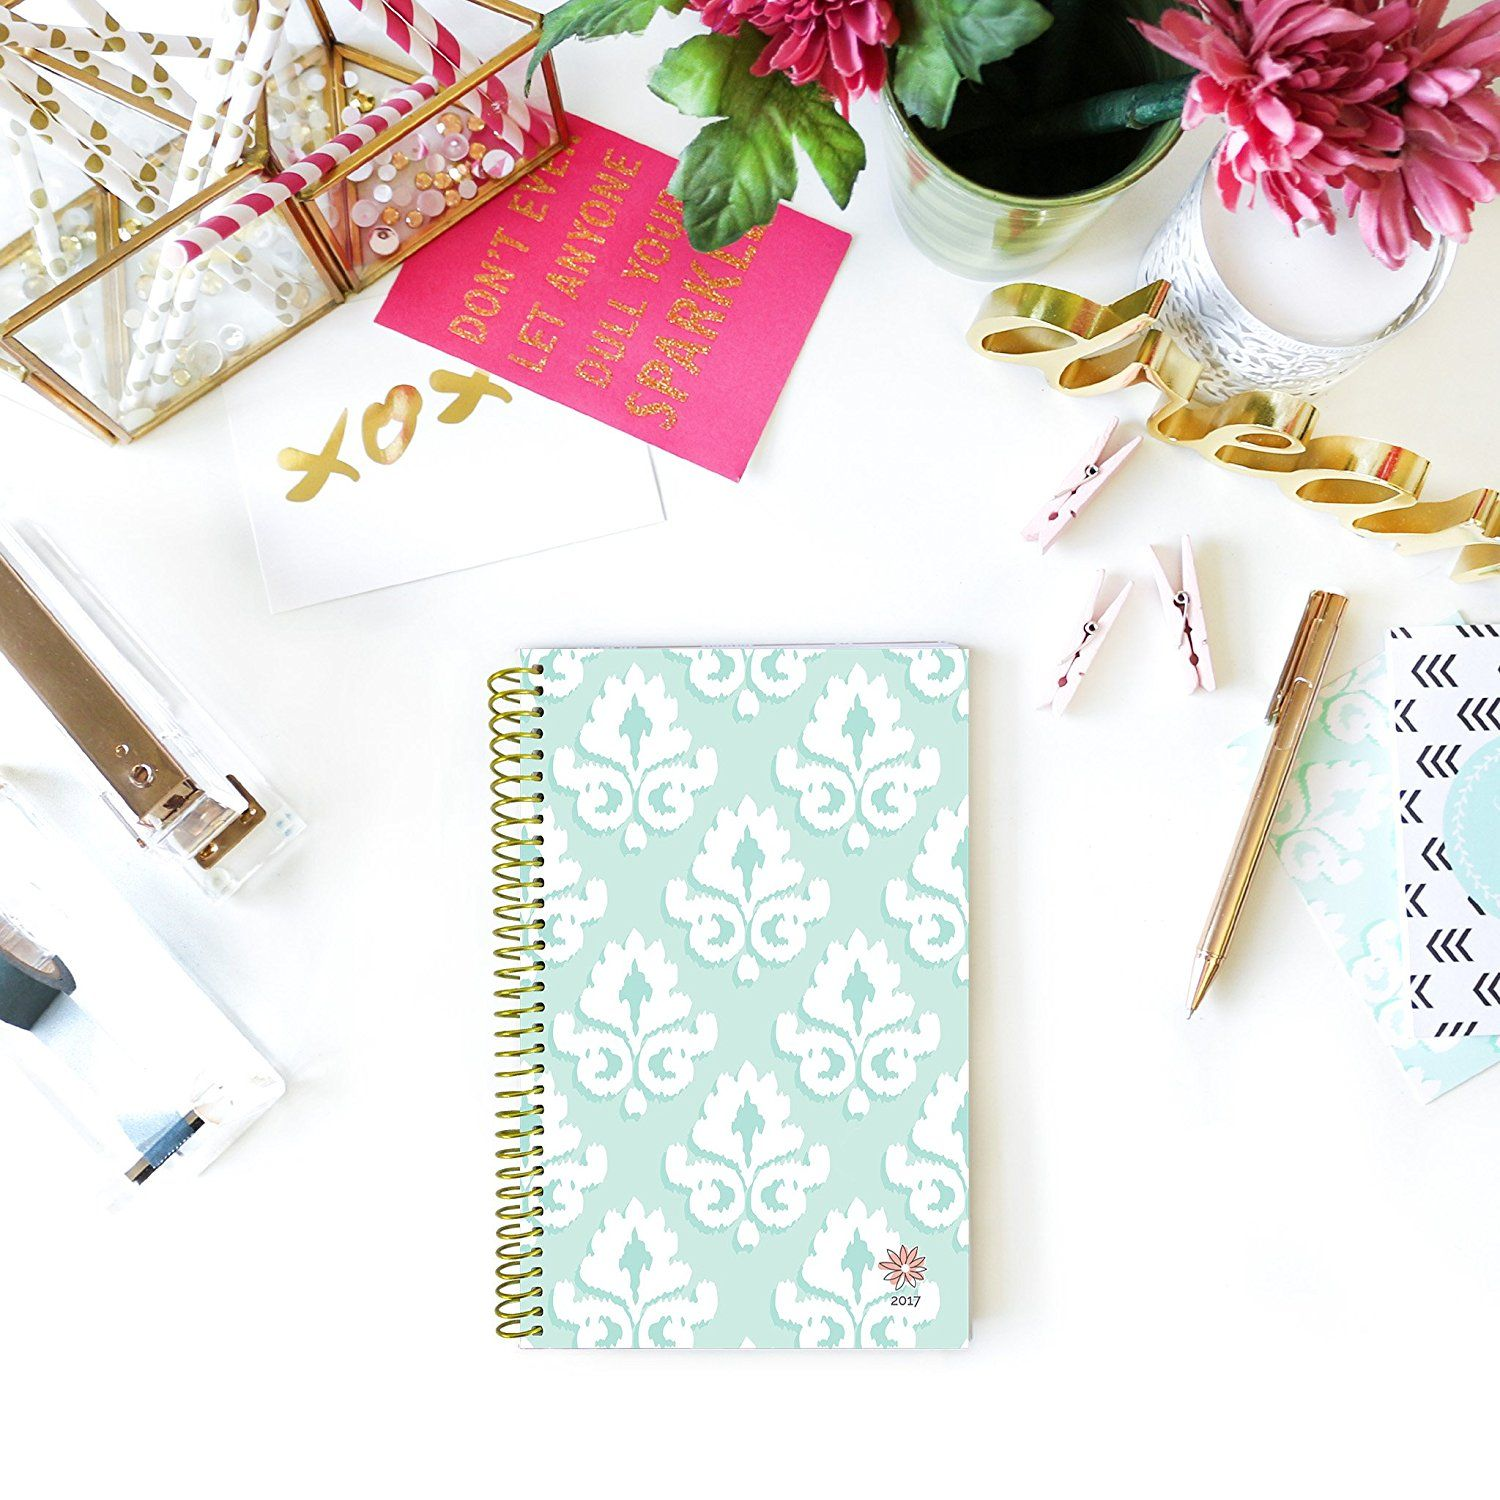 "Bloom Daily Planners 2017 Calendar Year Daily Planner - Passion/Goal Organizer - Monthly Weekly Agenda Datebook Diary - January 2017 - December 2017 - 6"" x 8.25"" - Mint Damask"